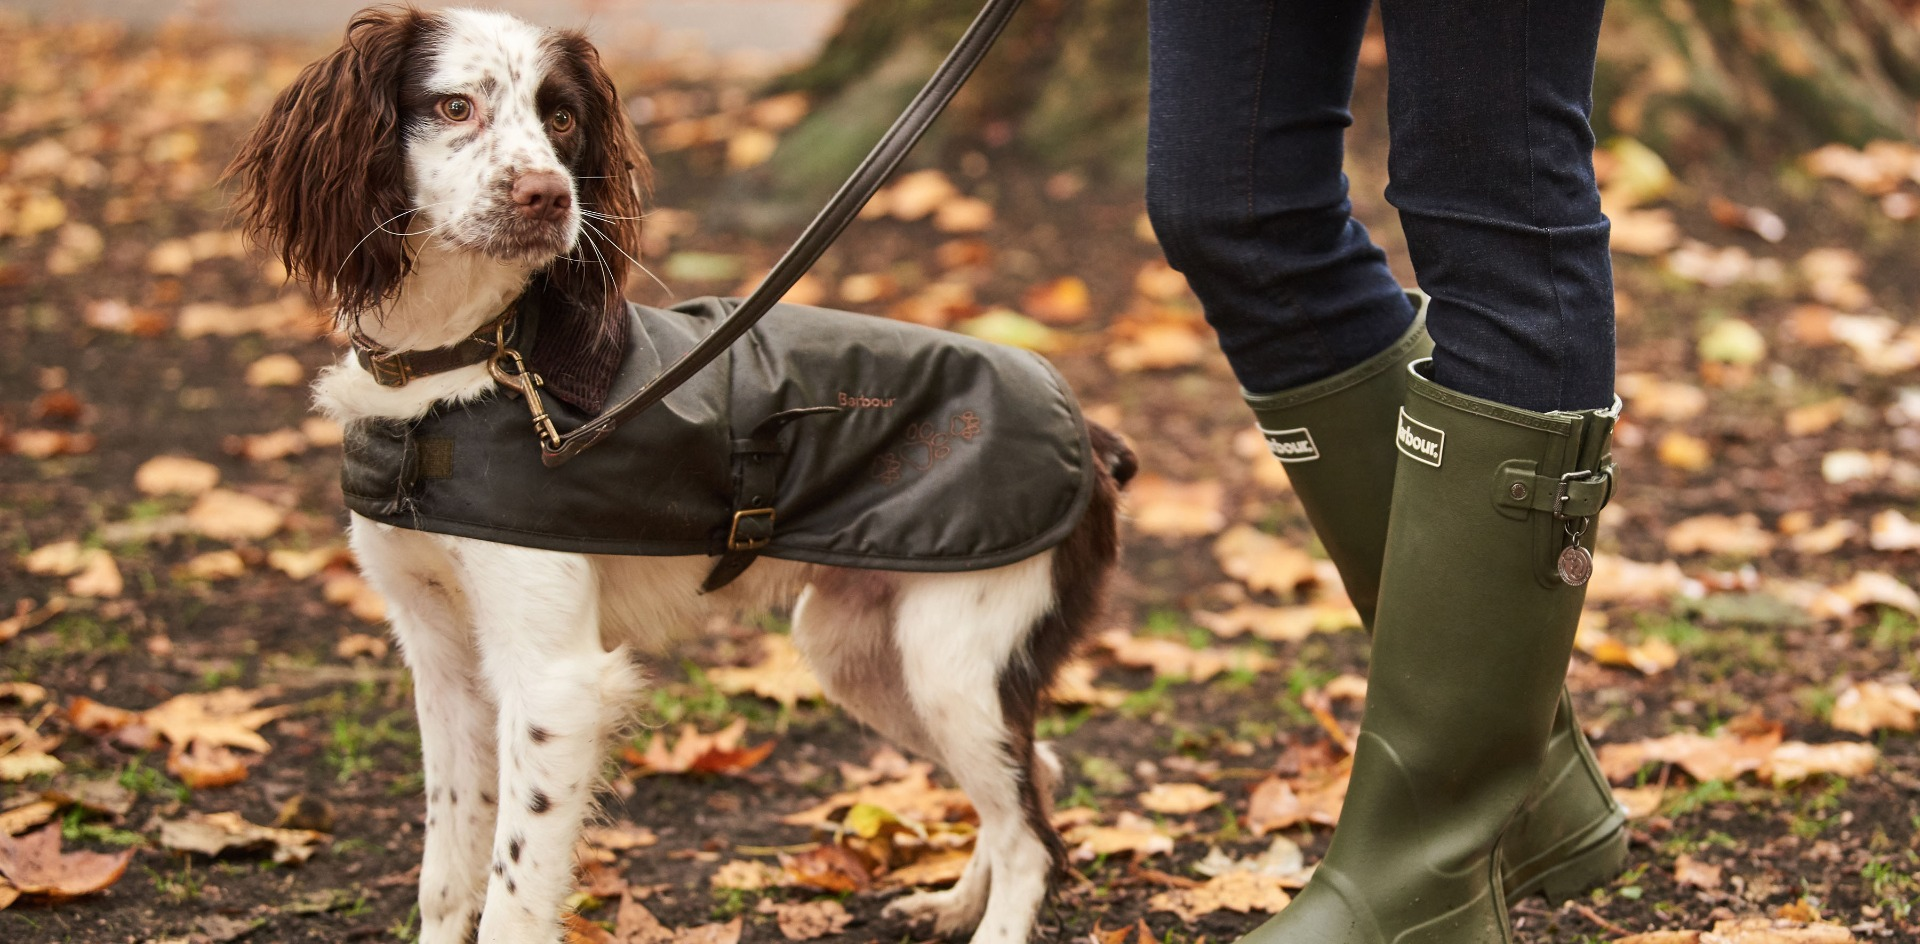 The Barbour Battersea Collection at The Game Fair